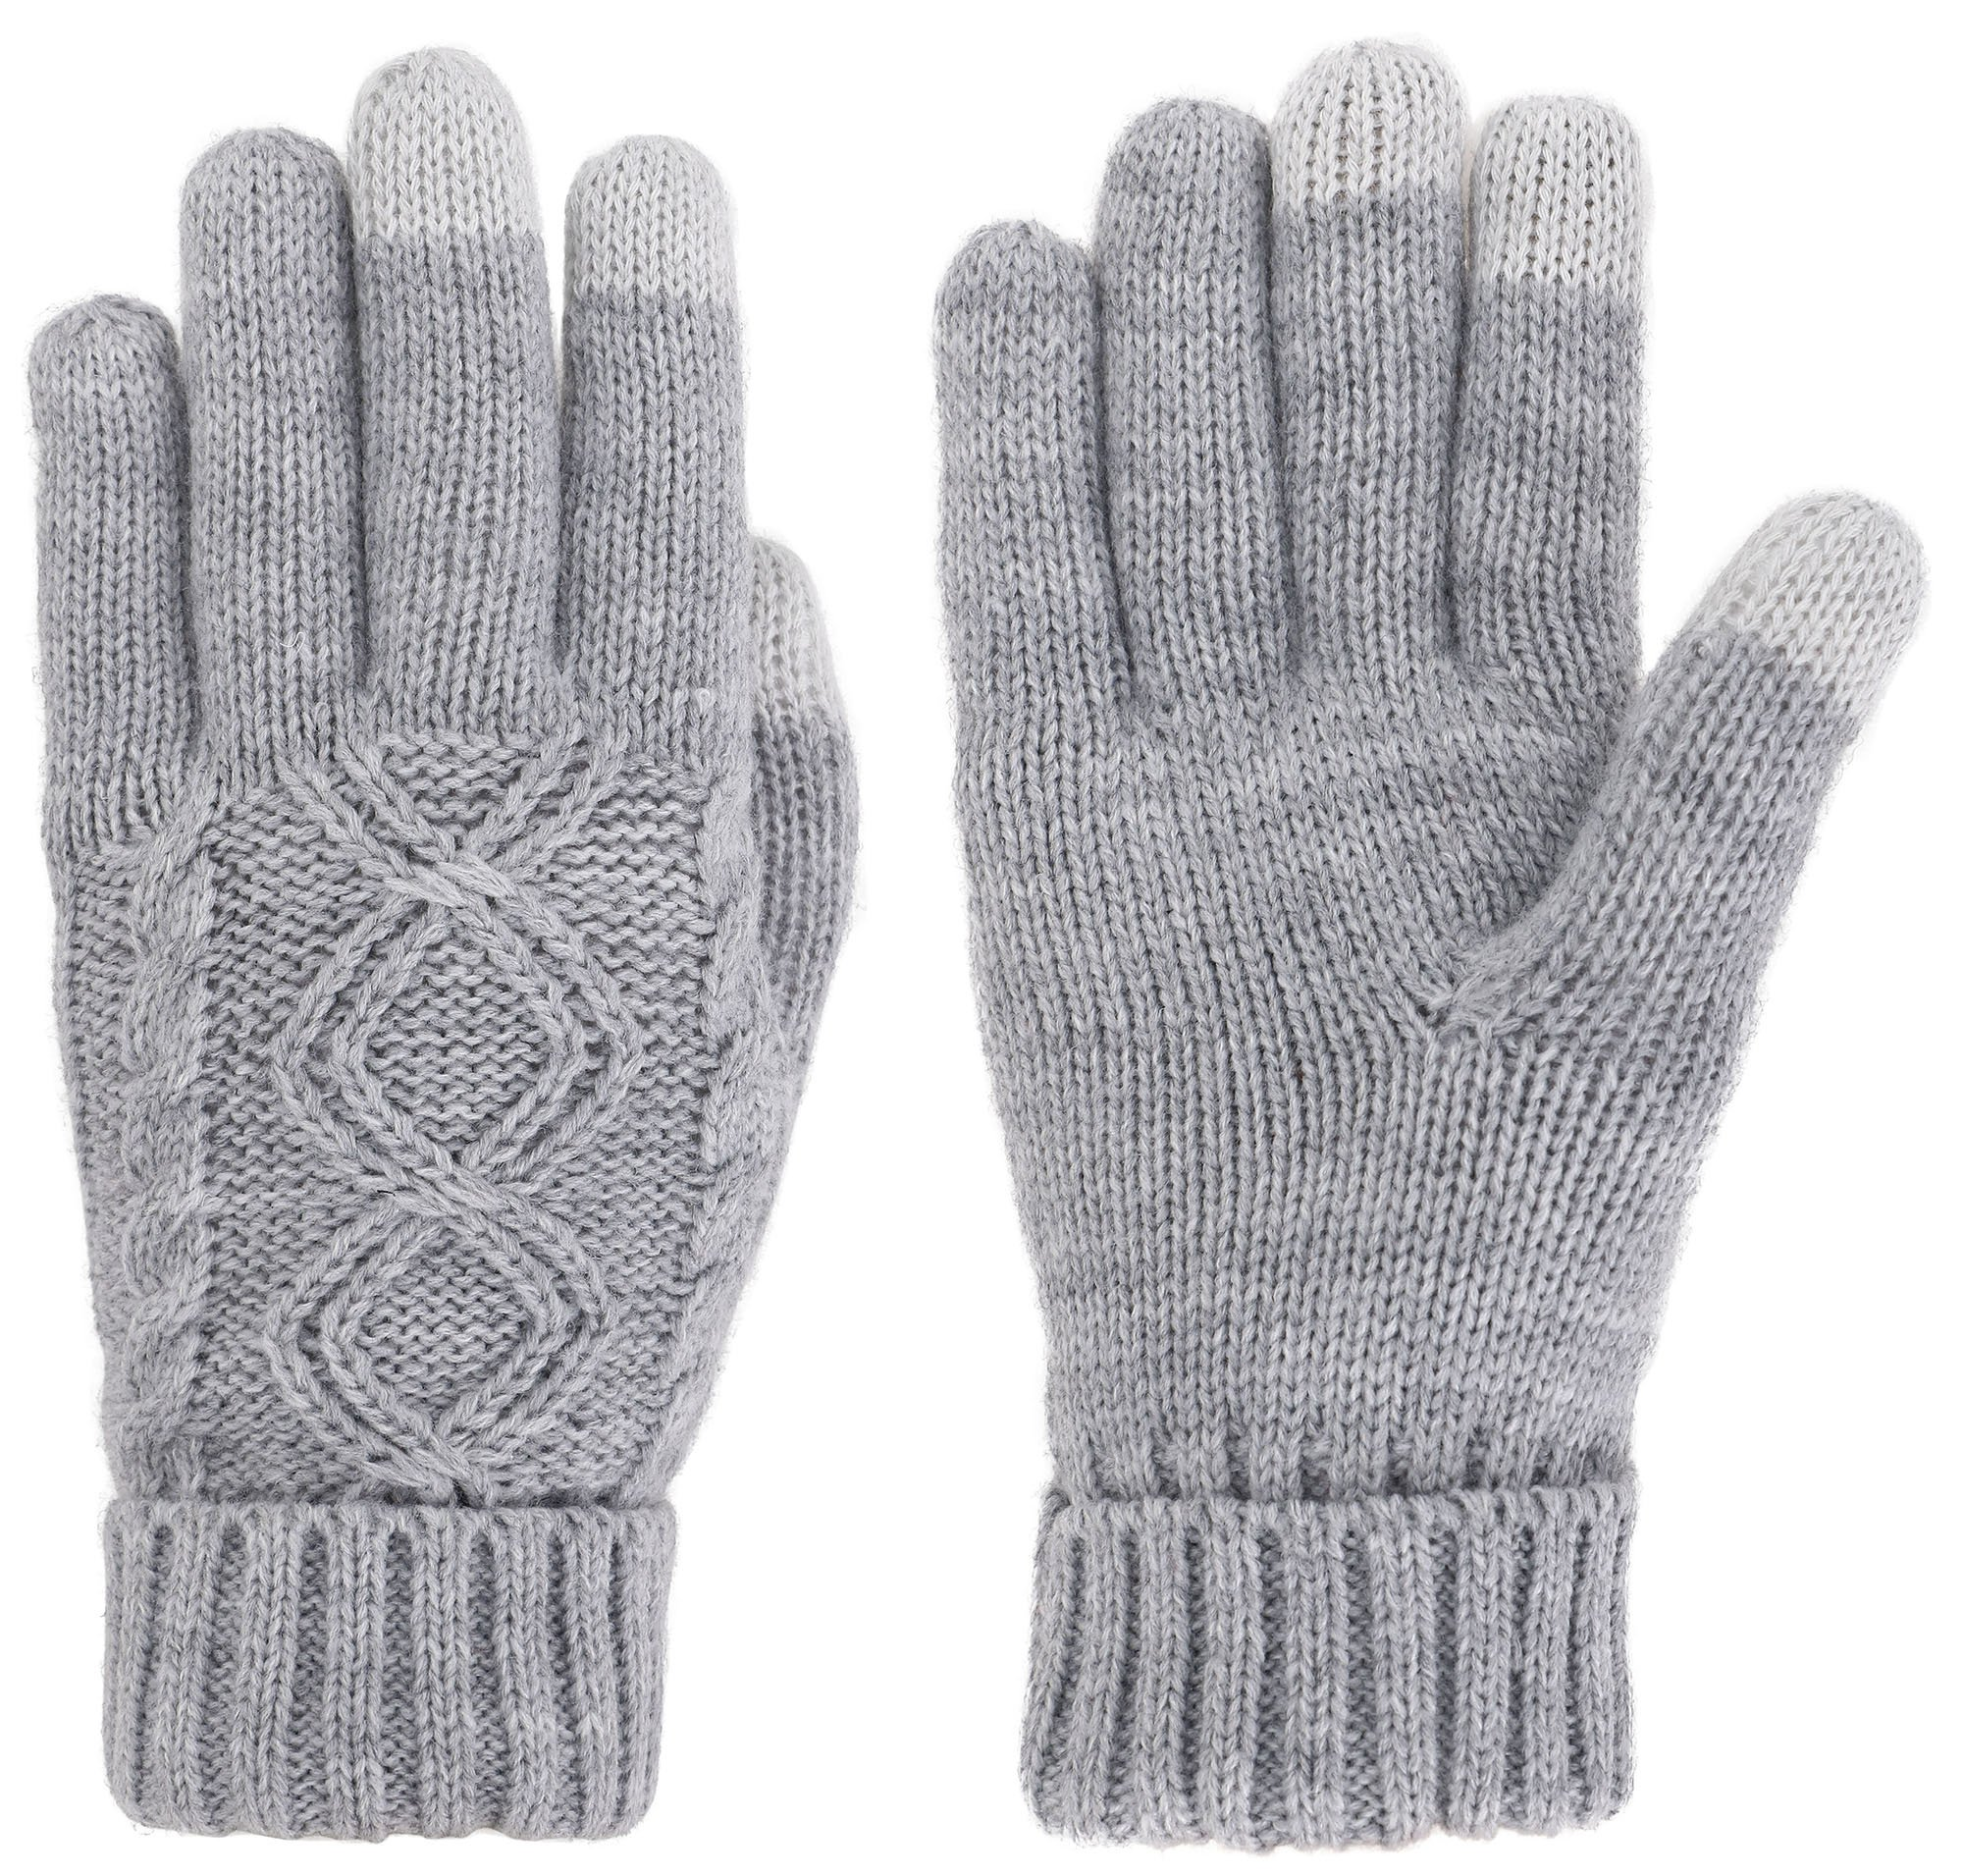 Women's Cable Knit 3 Finger Touchscreen Sensitive Winter Mitten Gloves,Grey